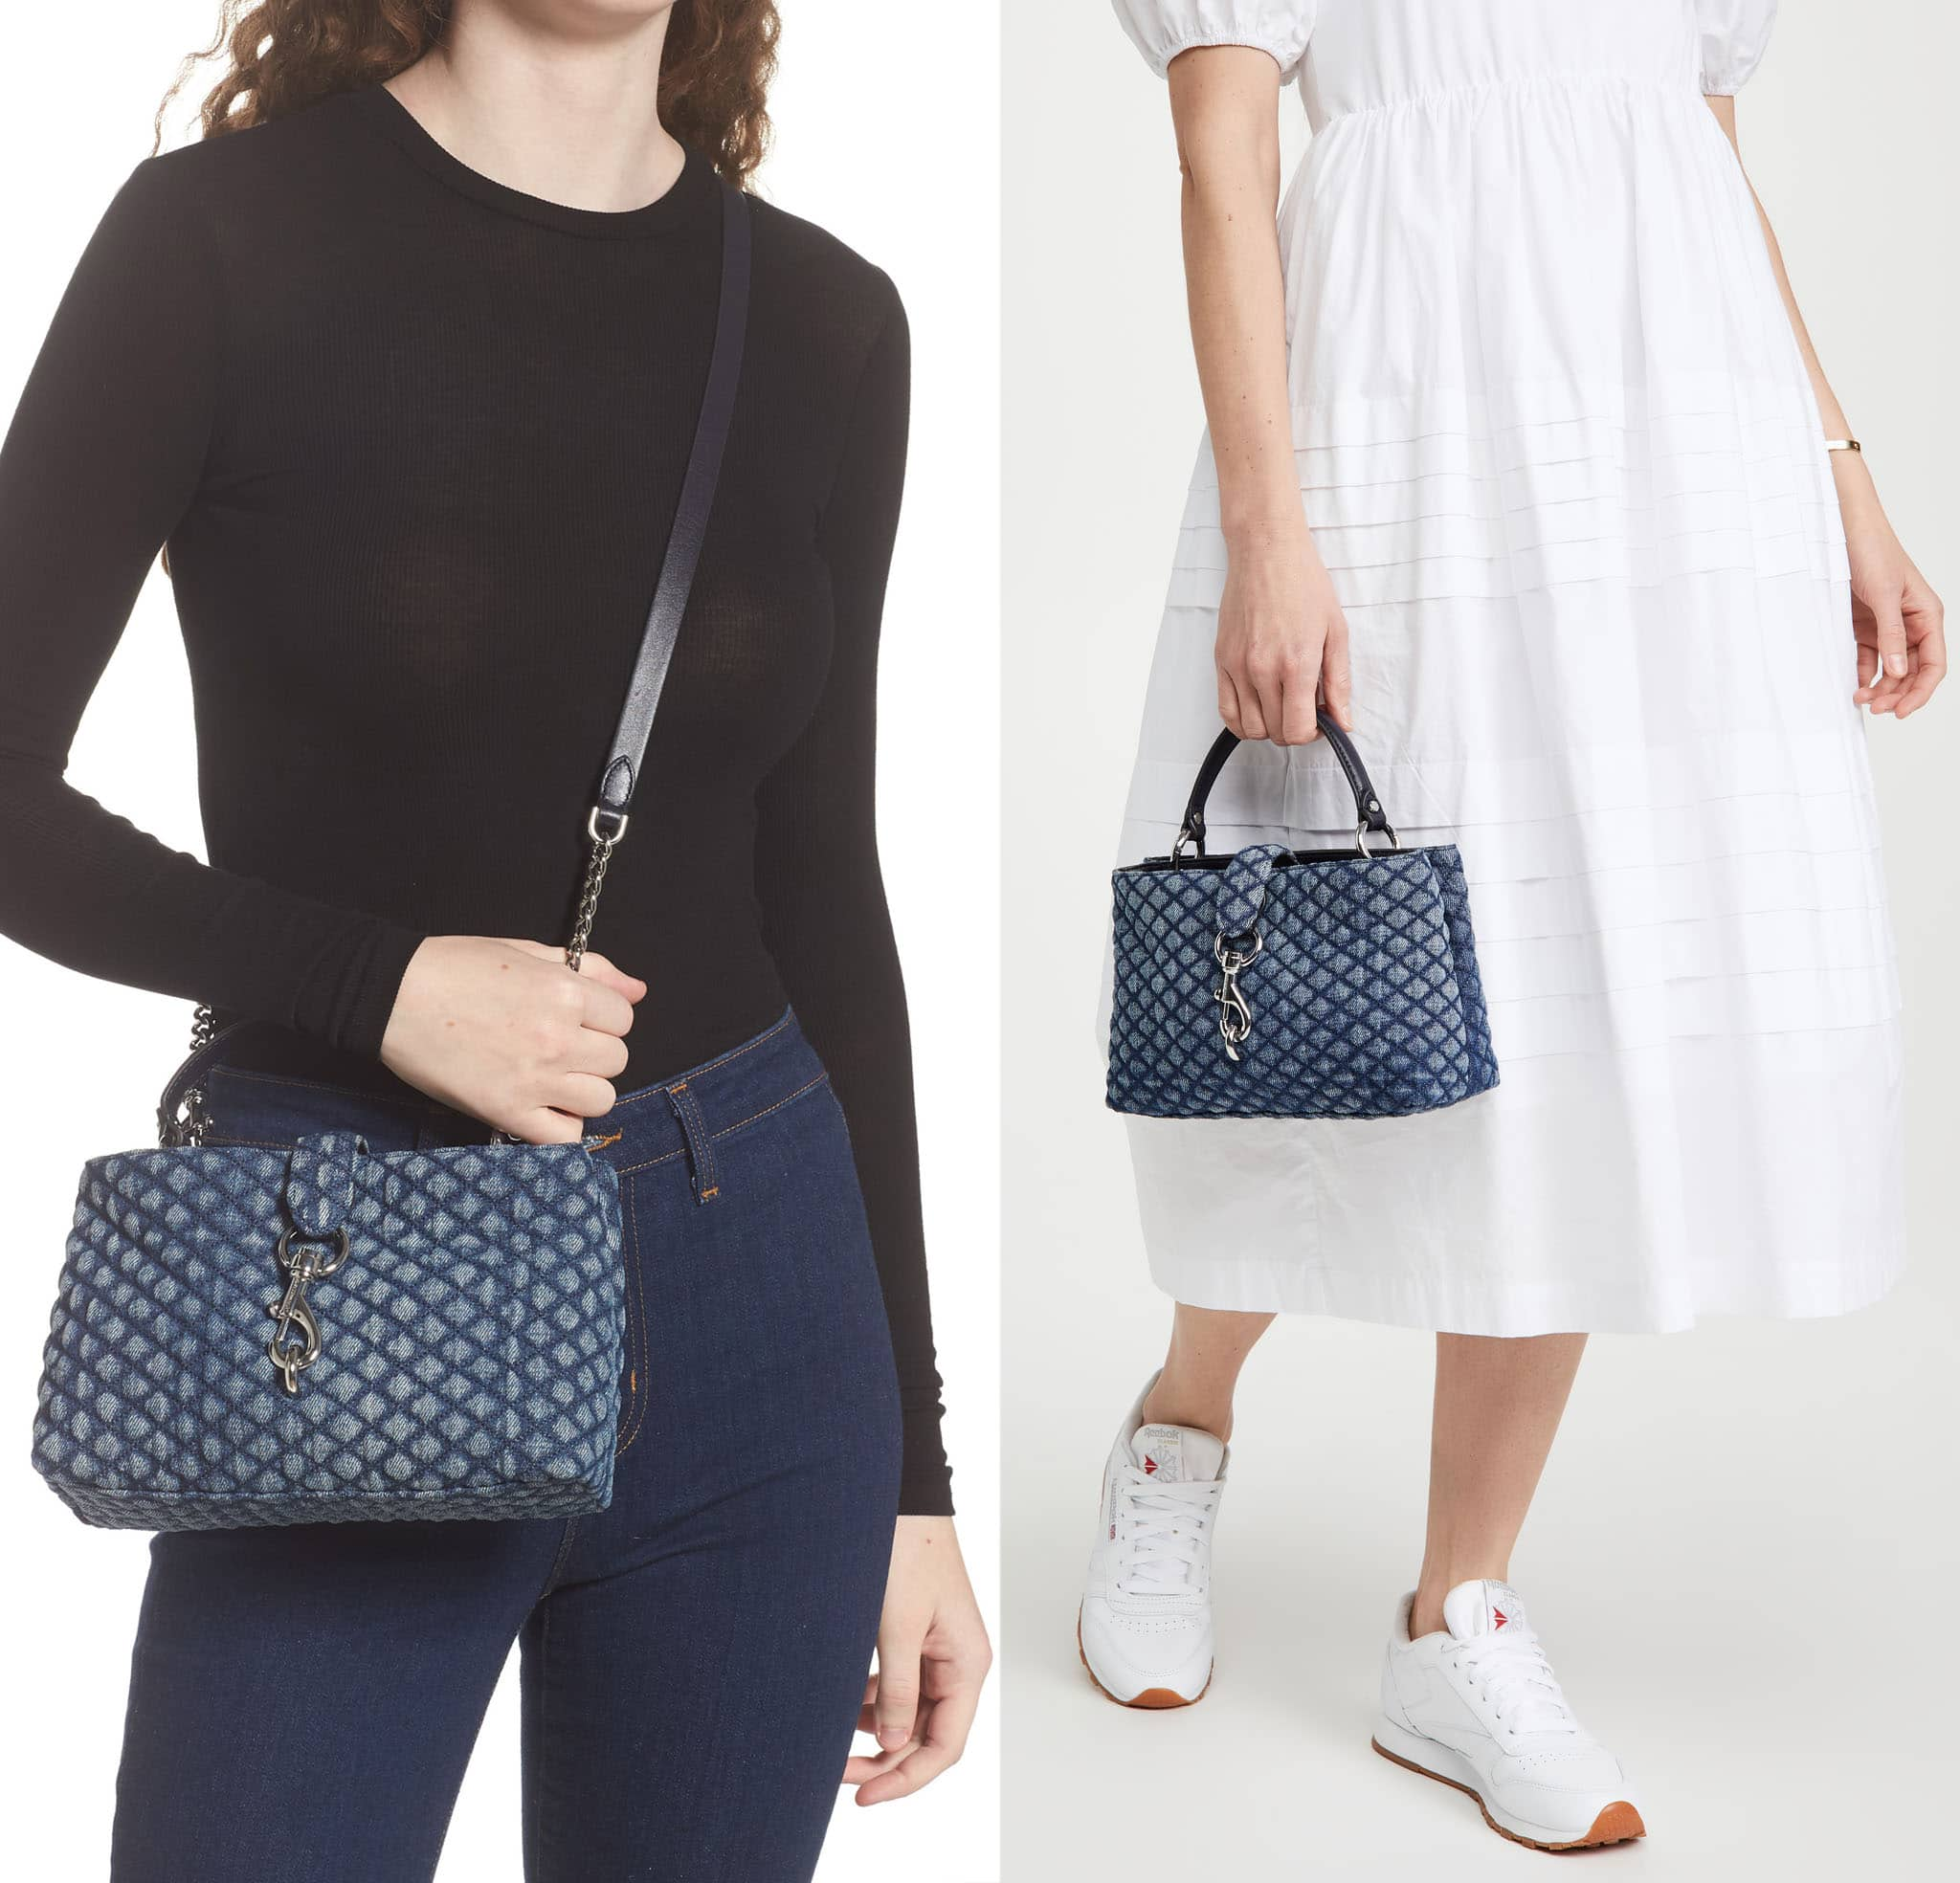 The Edie bag features a diamond-quilted denim design that brings a laid-back finish to a casual look